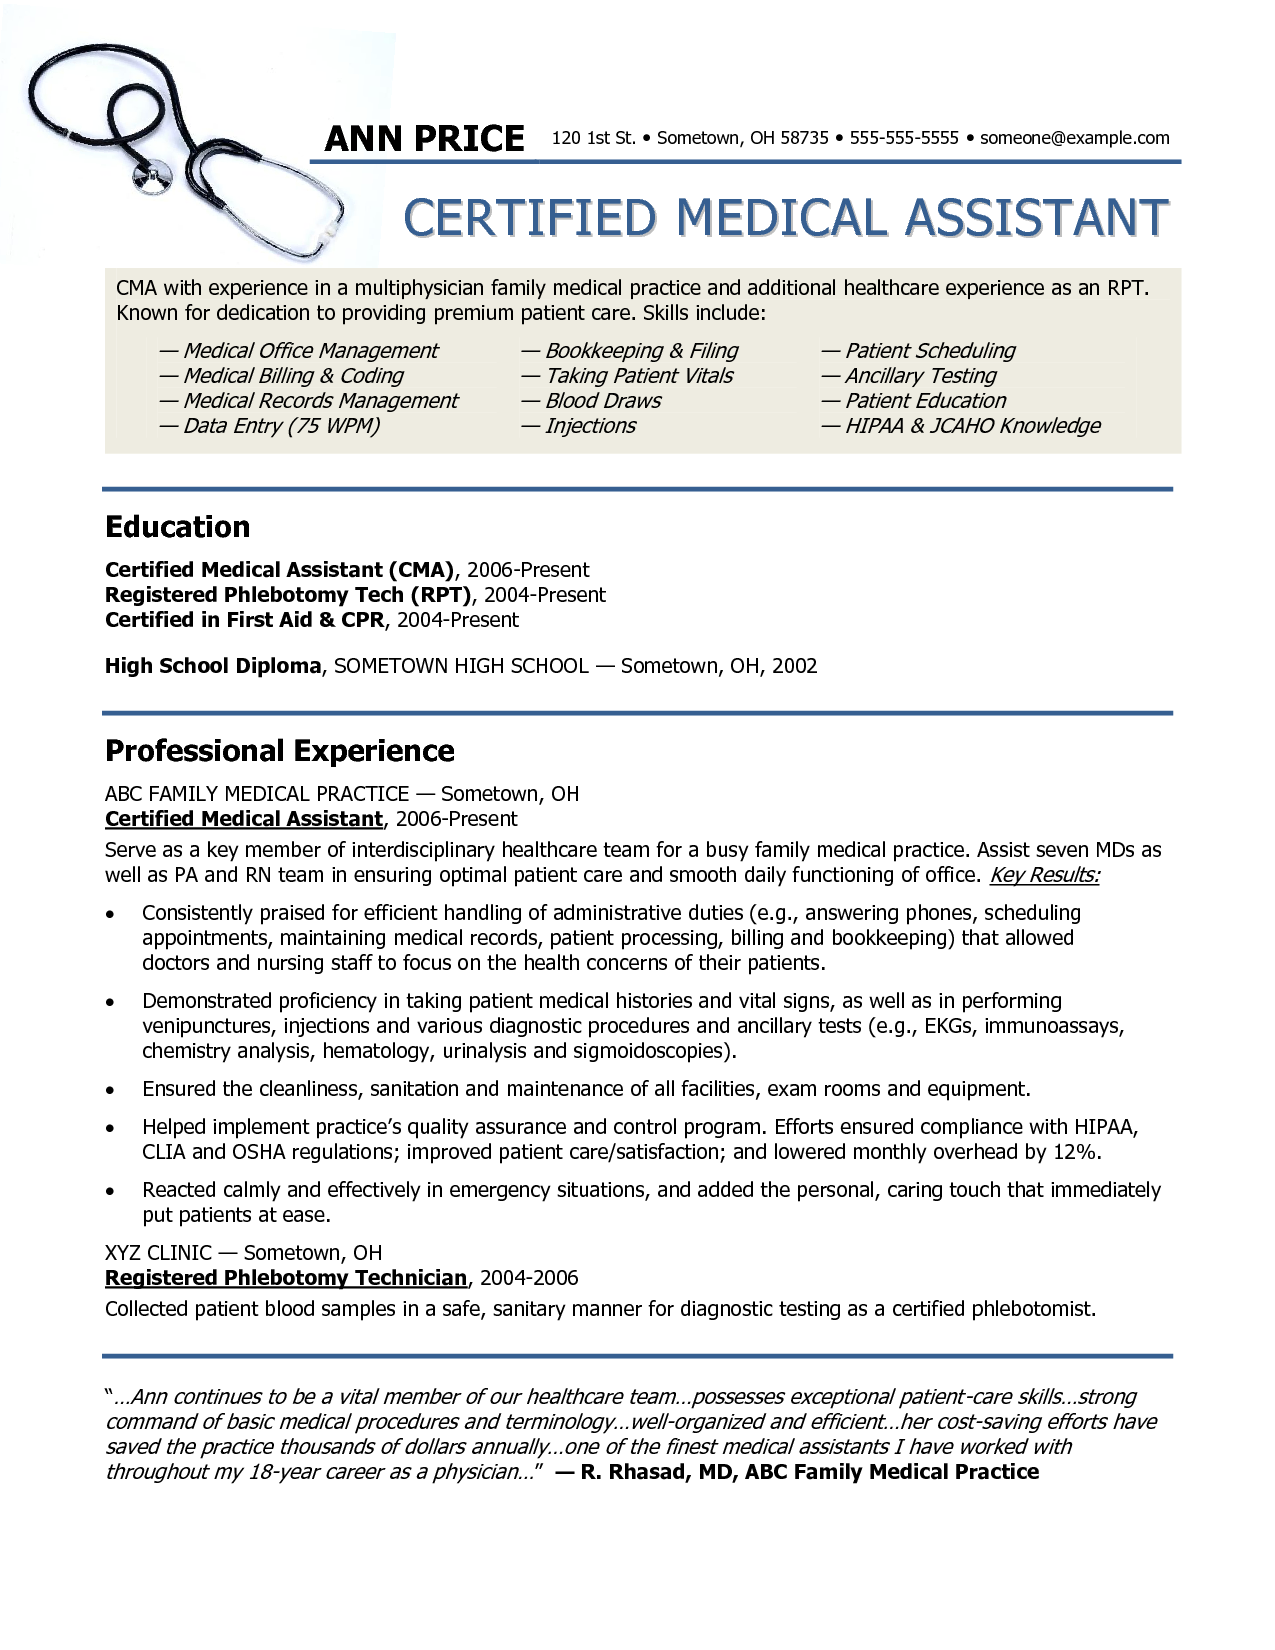 resume examples example of medical assistant resume regular medical assistant medical assistant resume example - Medical Assistant Resume